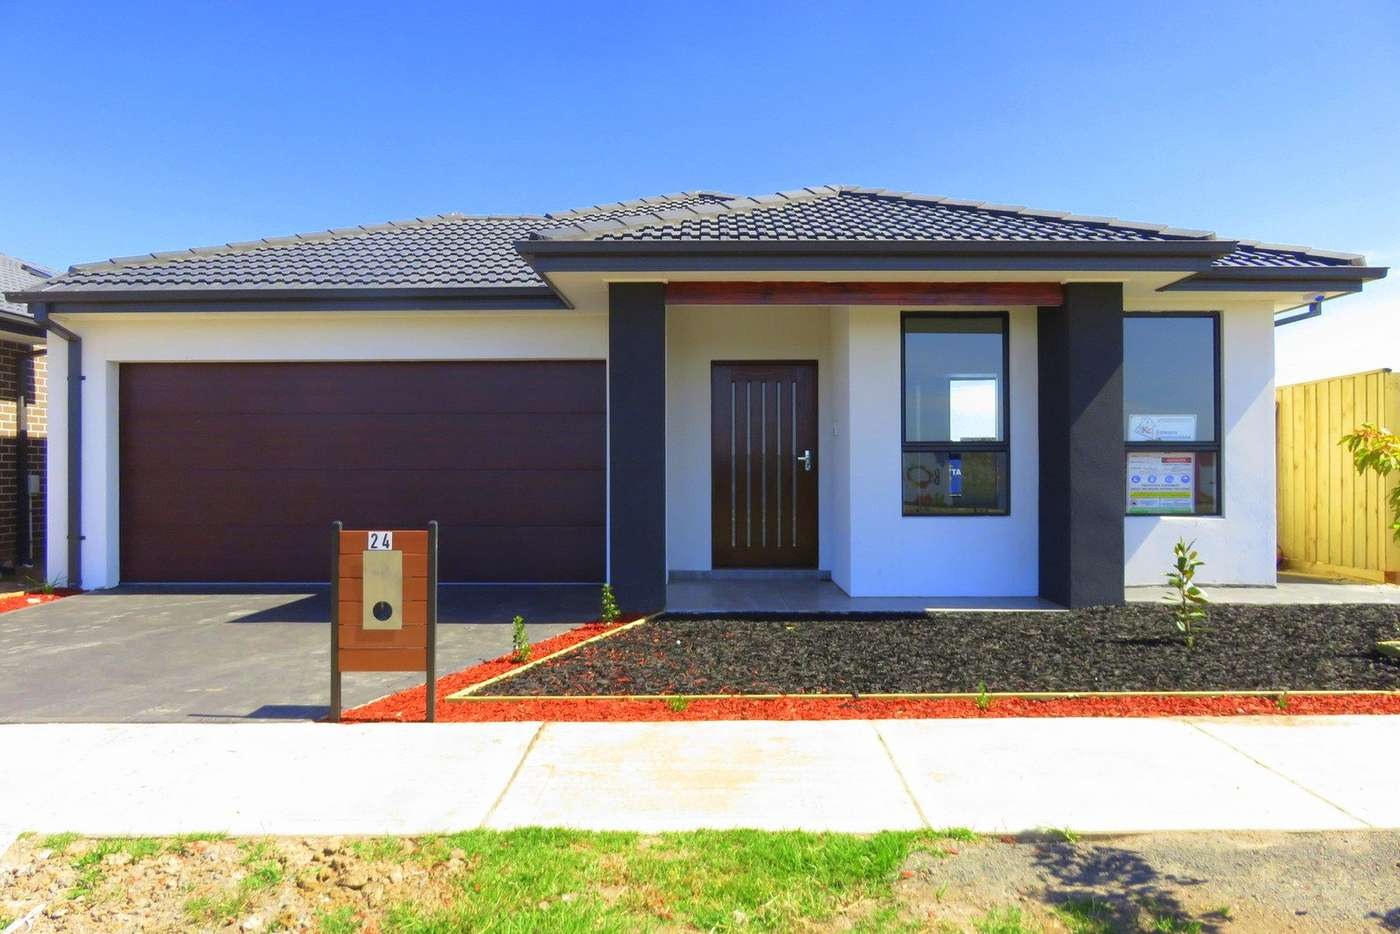 Main view of Homely house listing, 24 Paprika Parade, Mickleham VIC 3064